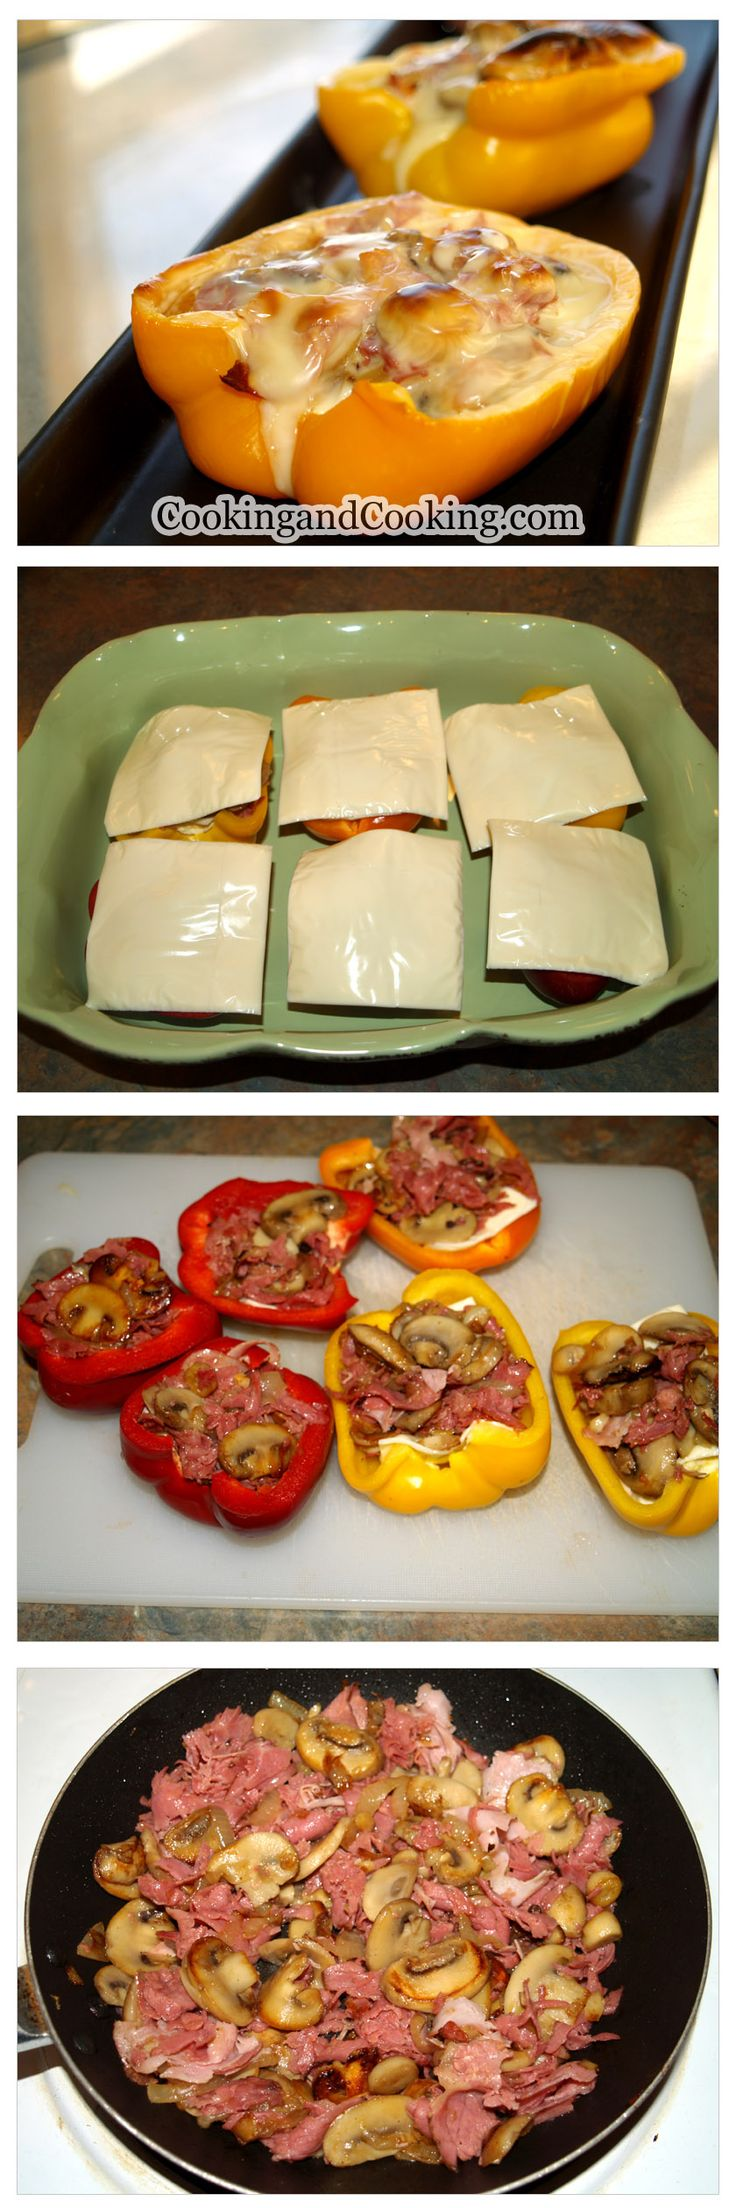 Philly Cheese Steak Stuffed Bell Peppers Recipe, Easy Appetizer Recipes